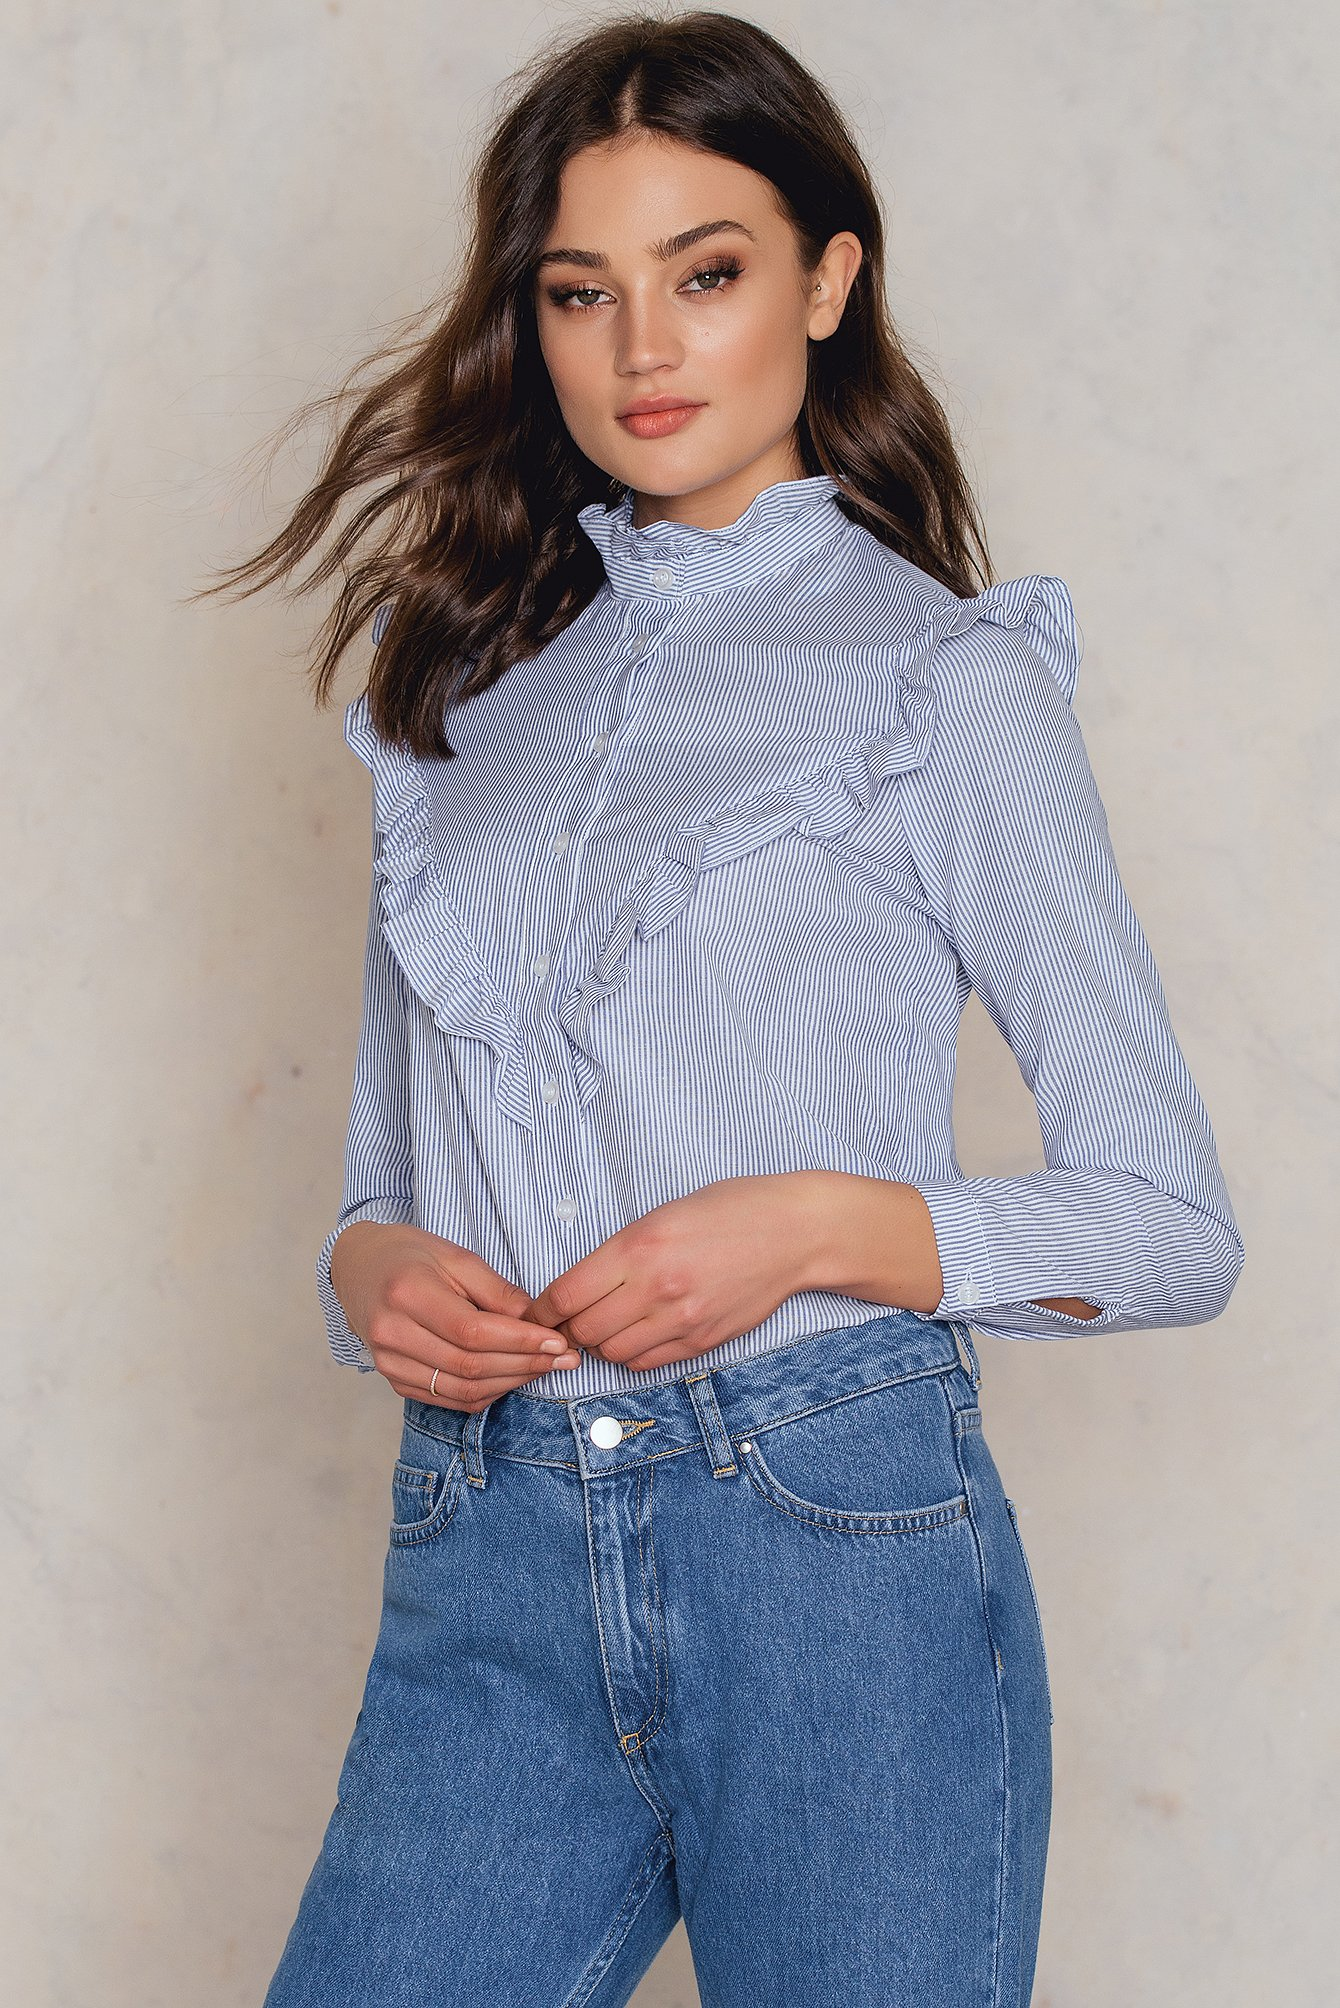 Blue Mavi Blouse